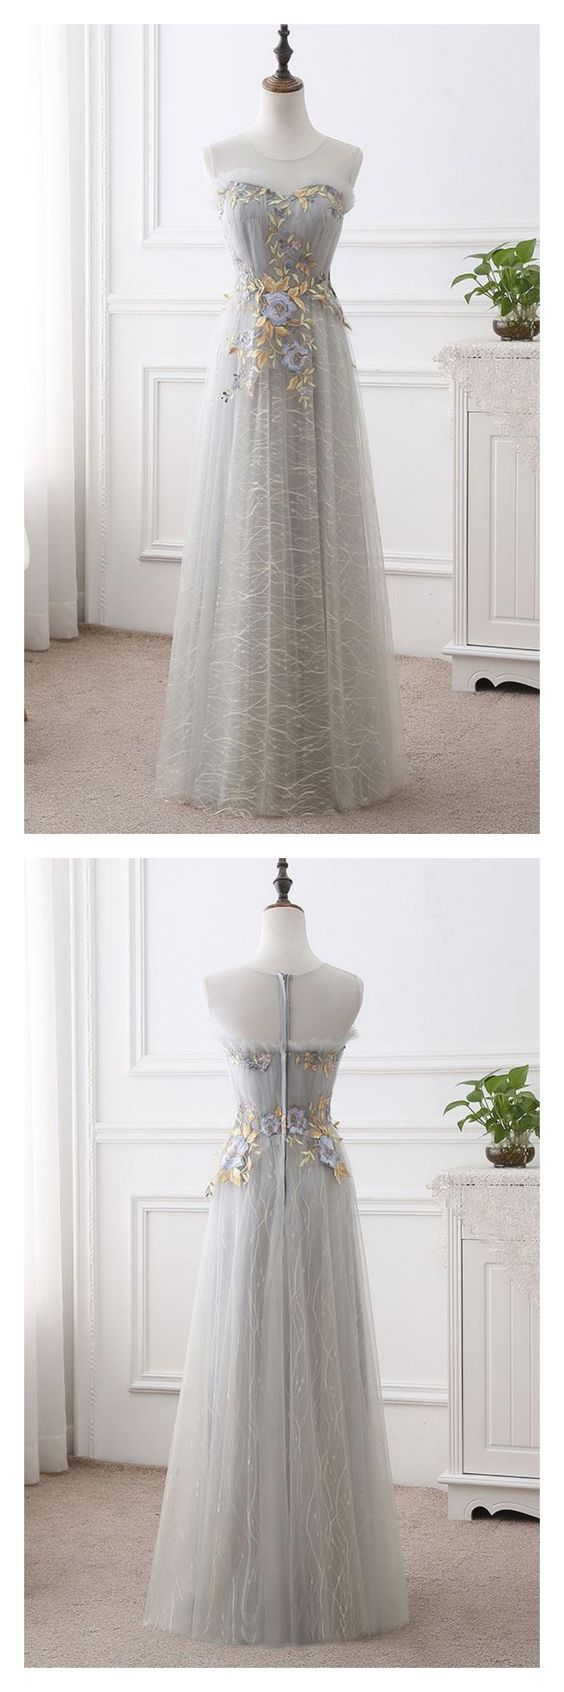 A-line Scoop-neck ,Chapel Train Tulle Appliqued ,Long Prom Dresses